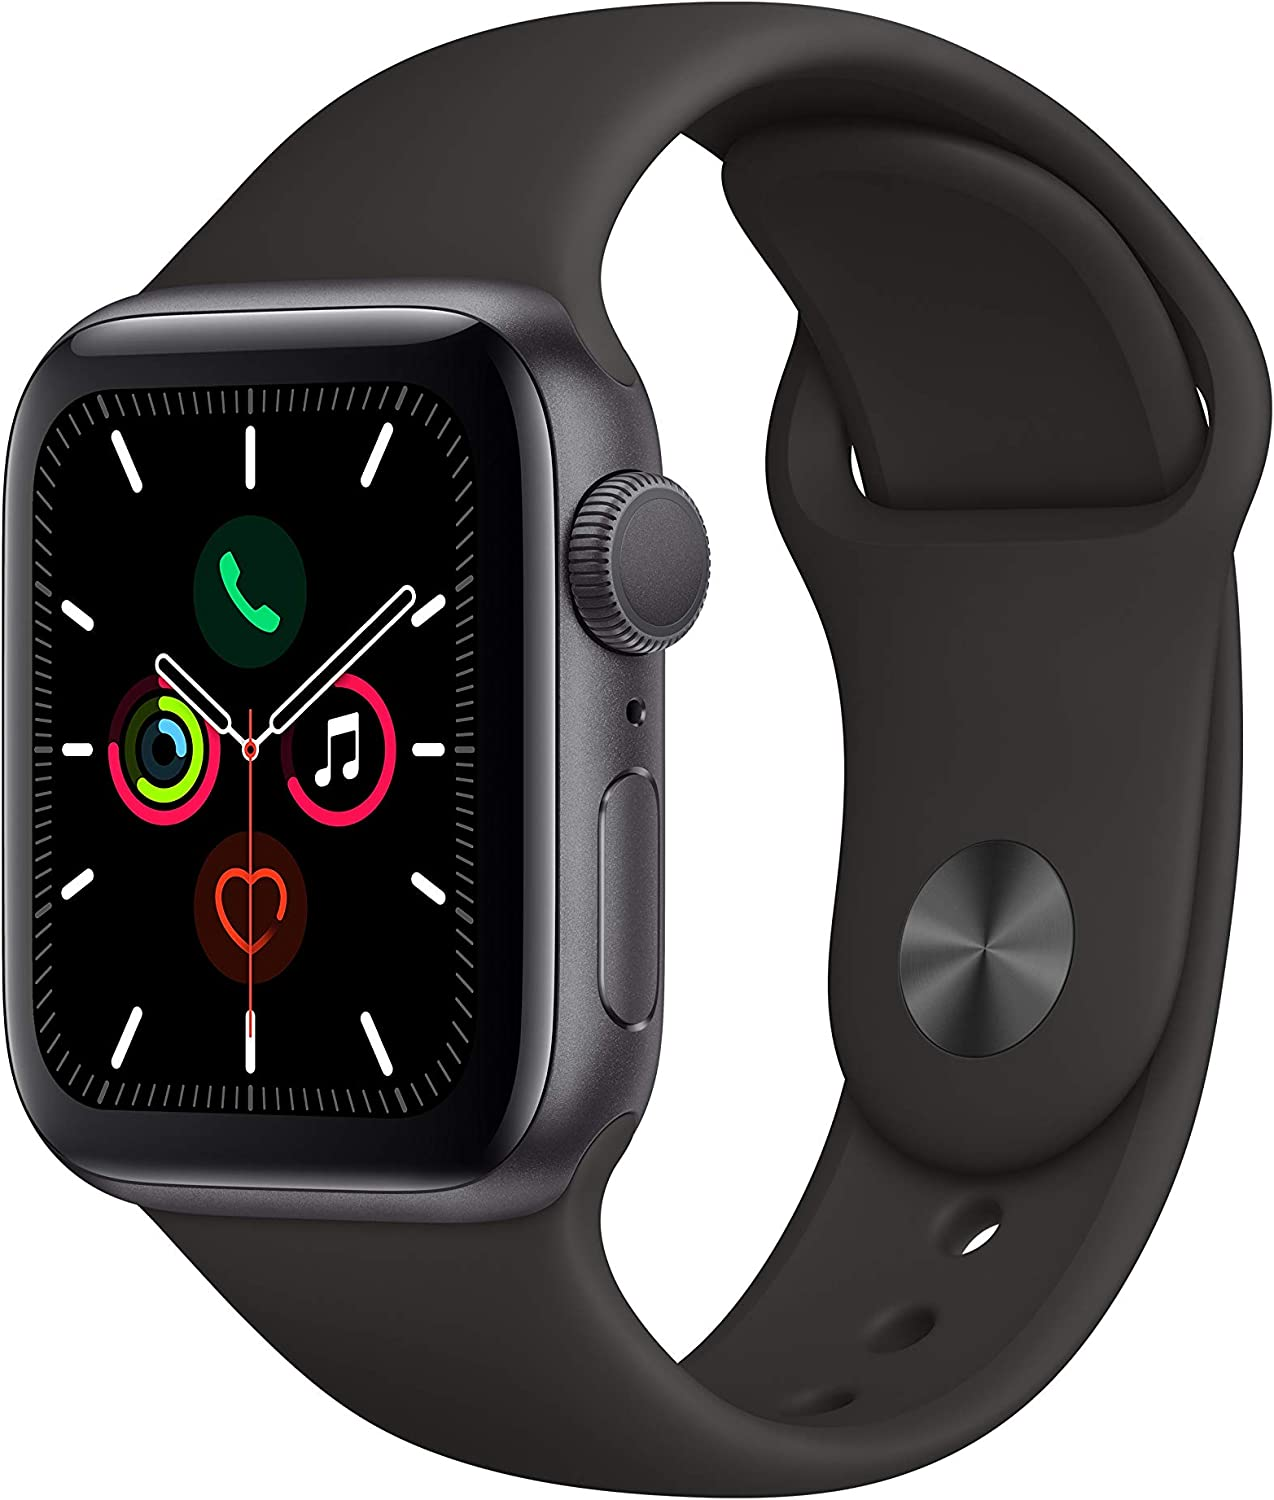 Amazon.com: Apple Watch Series 5 (GPS, 40mm) - Space Gray Aluminum ...